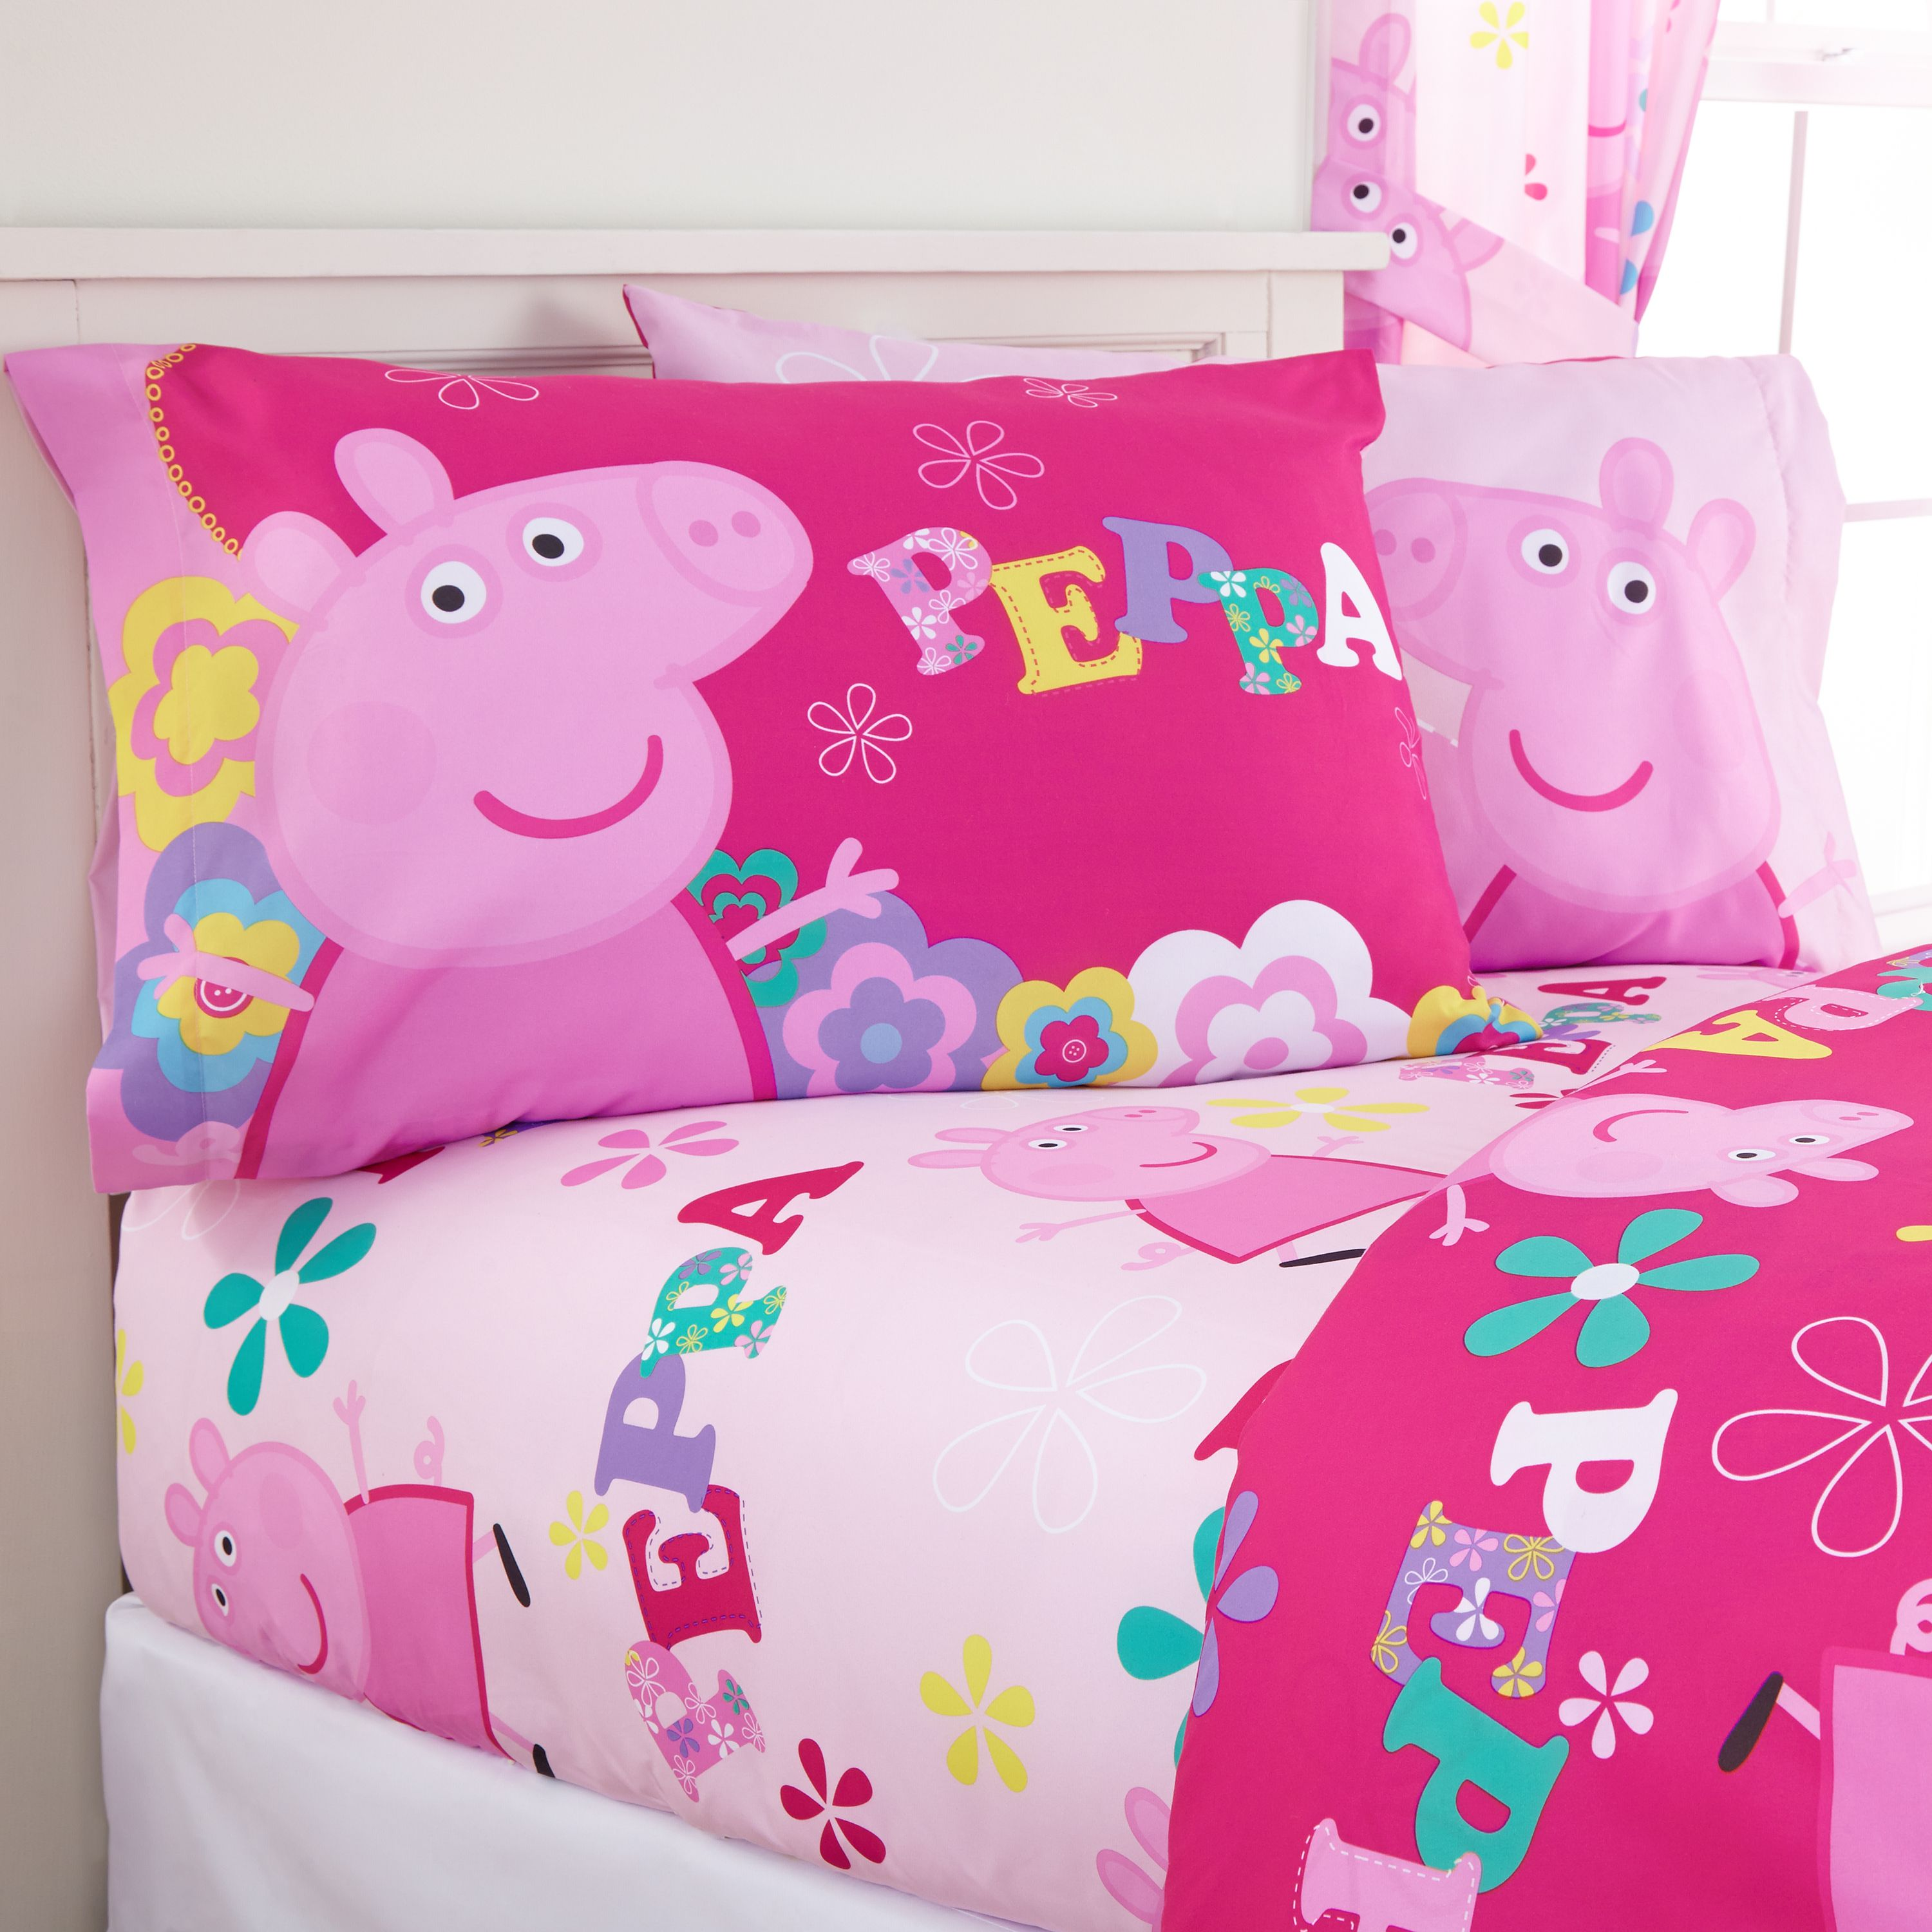 Peppa Pig 'Tweet Tweet Oink' Kids Sheet Set